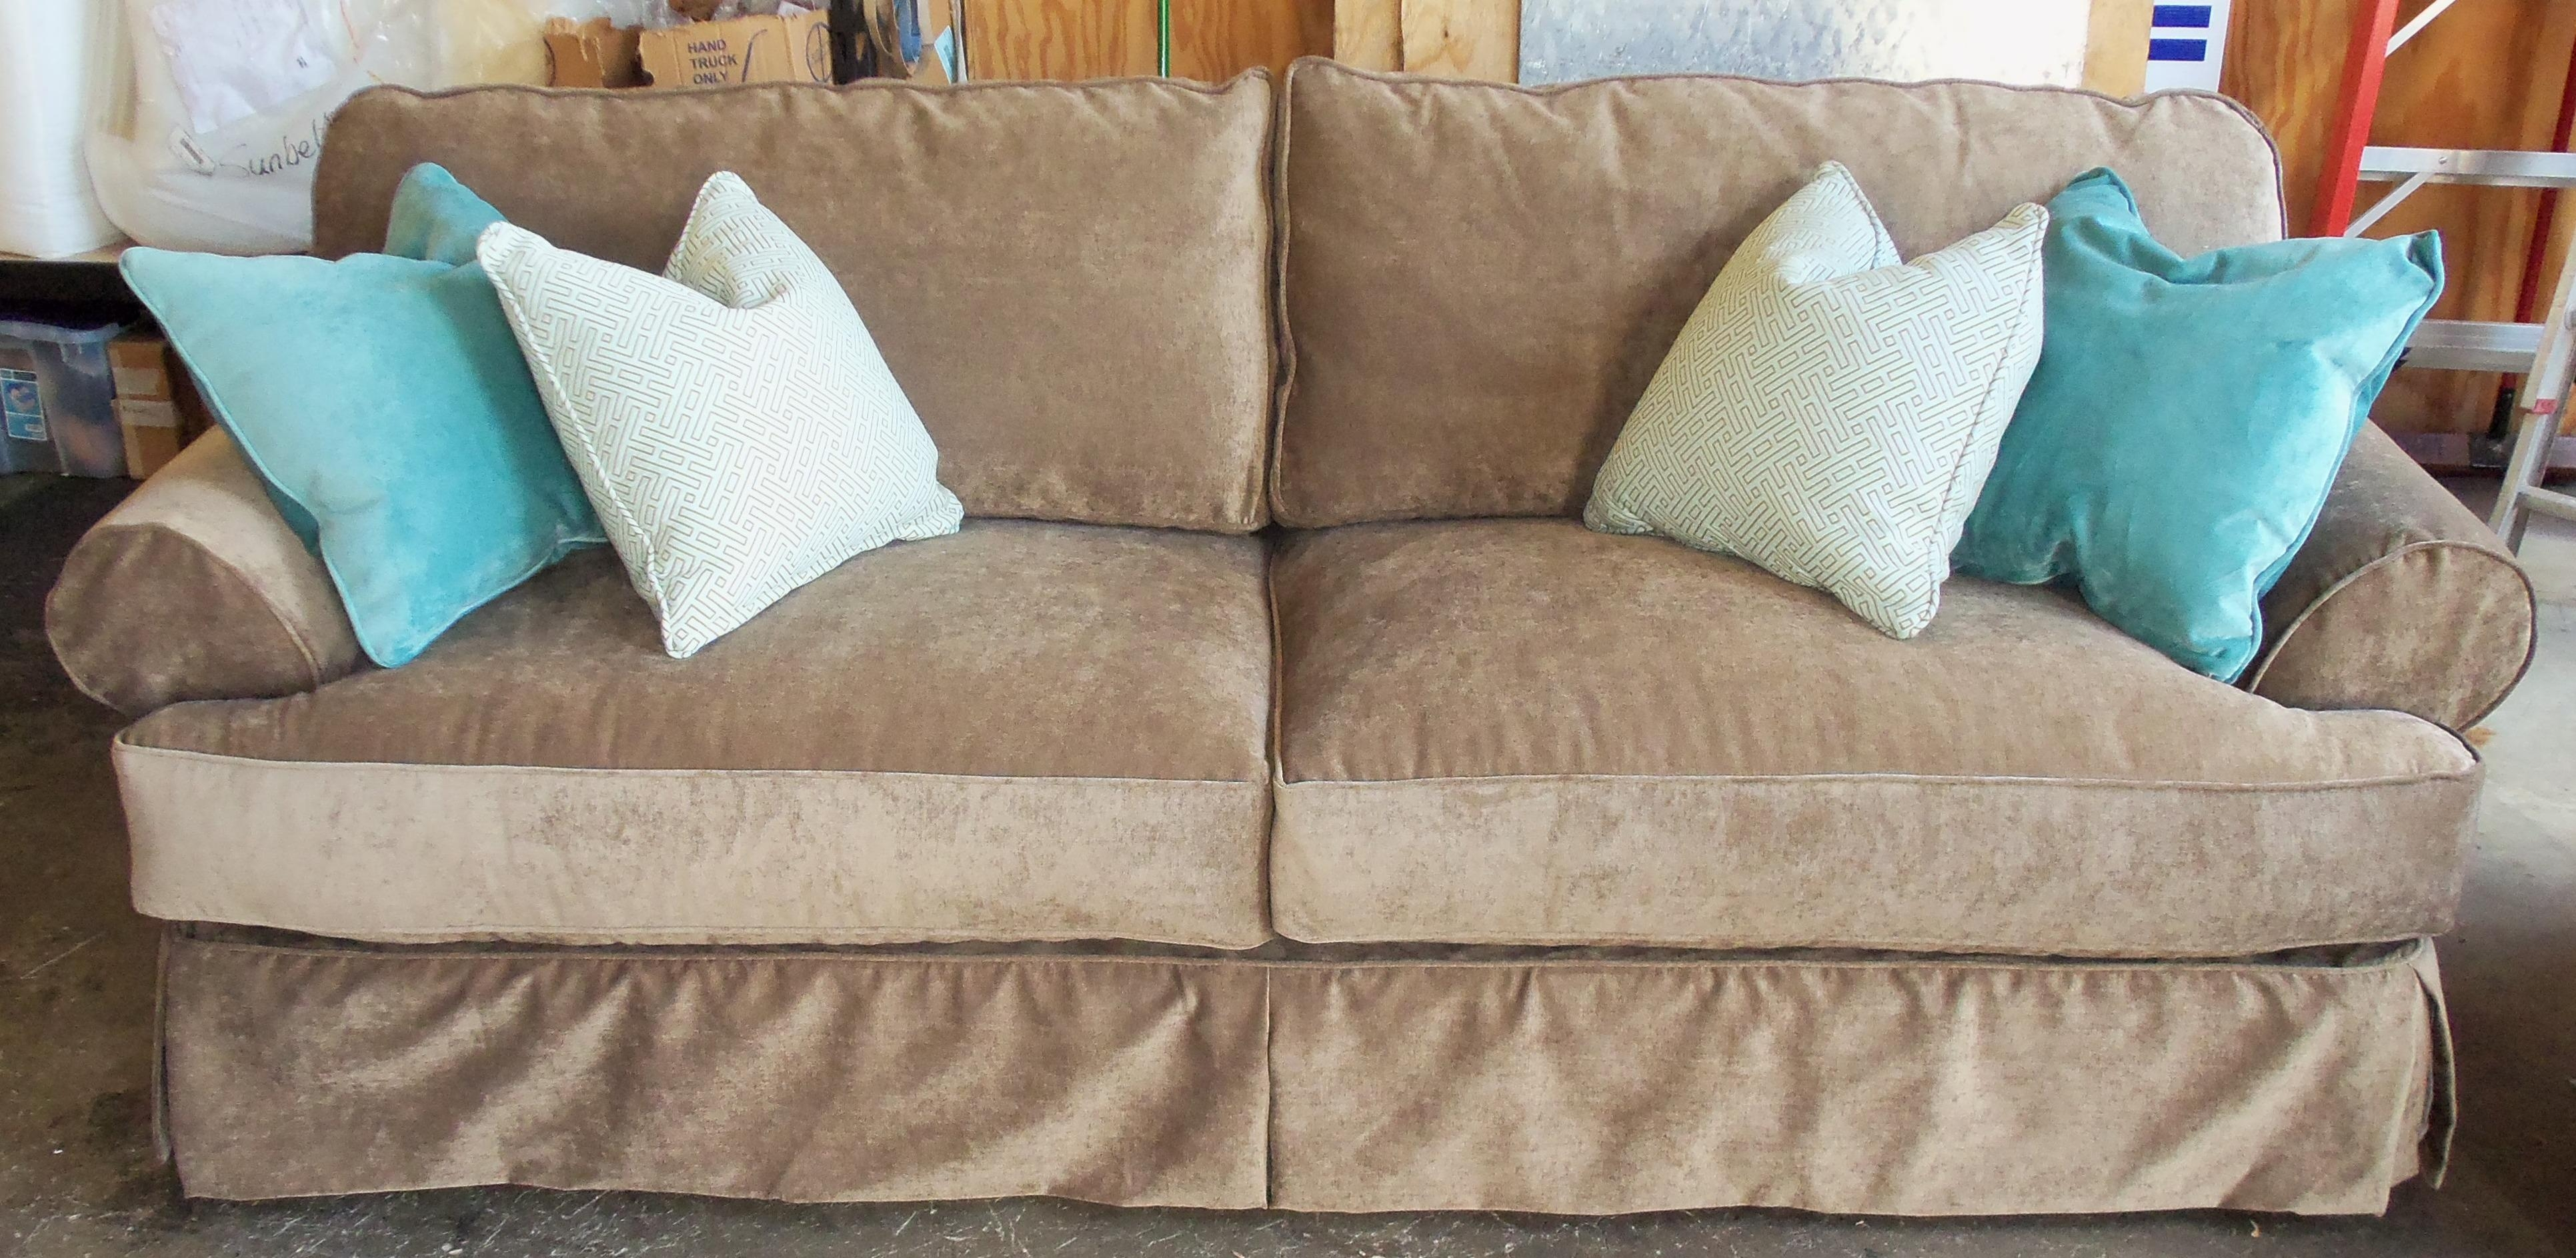 Decorating: Elegant Rowe Furniture Slipcovers With Glass Coffee With Regard To Rowe Slipcovers (Image 1 of 20)